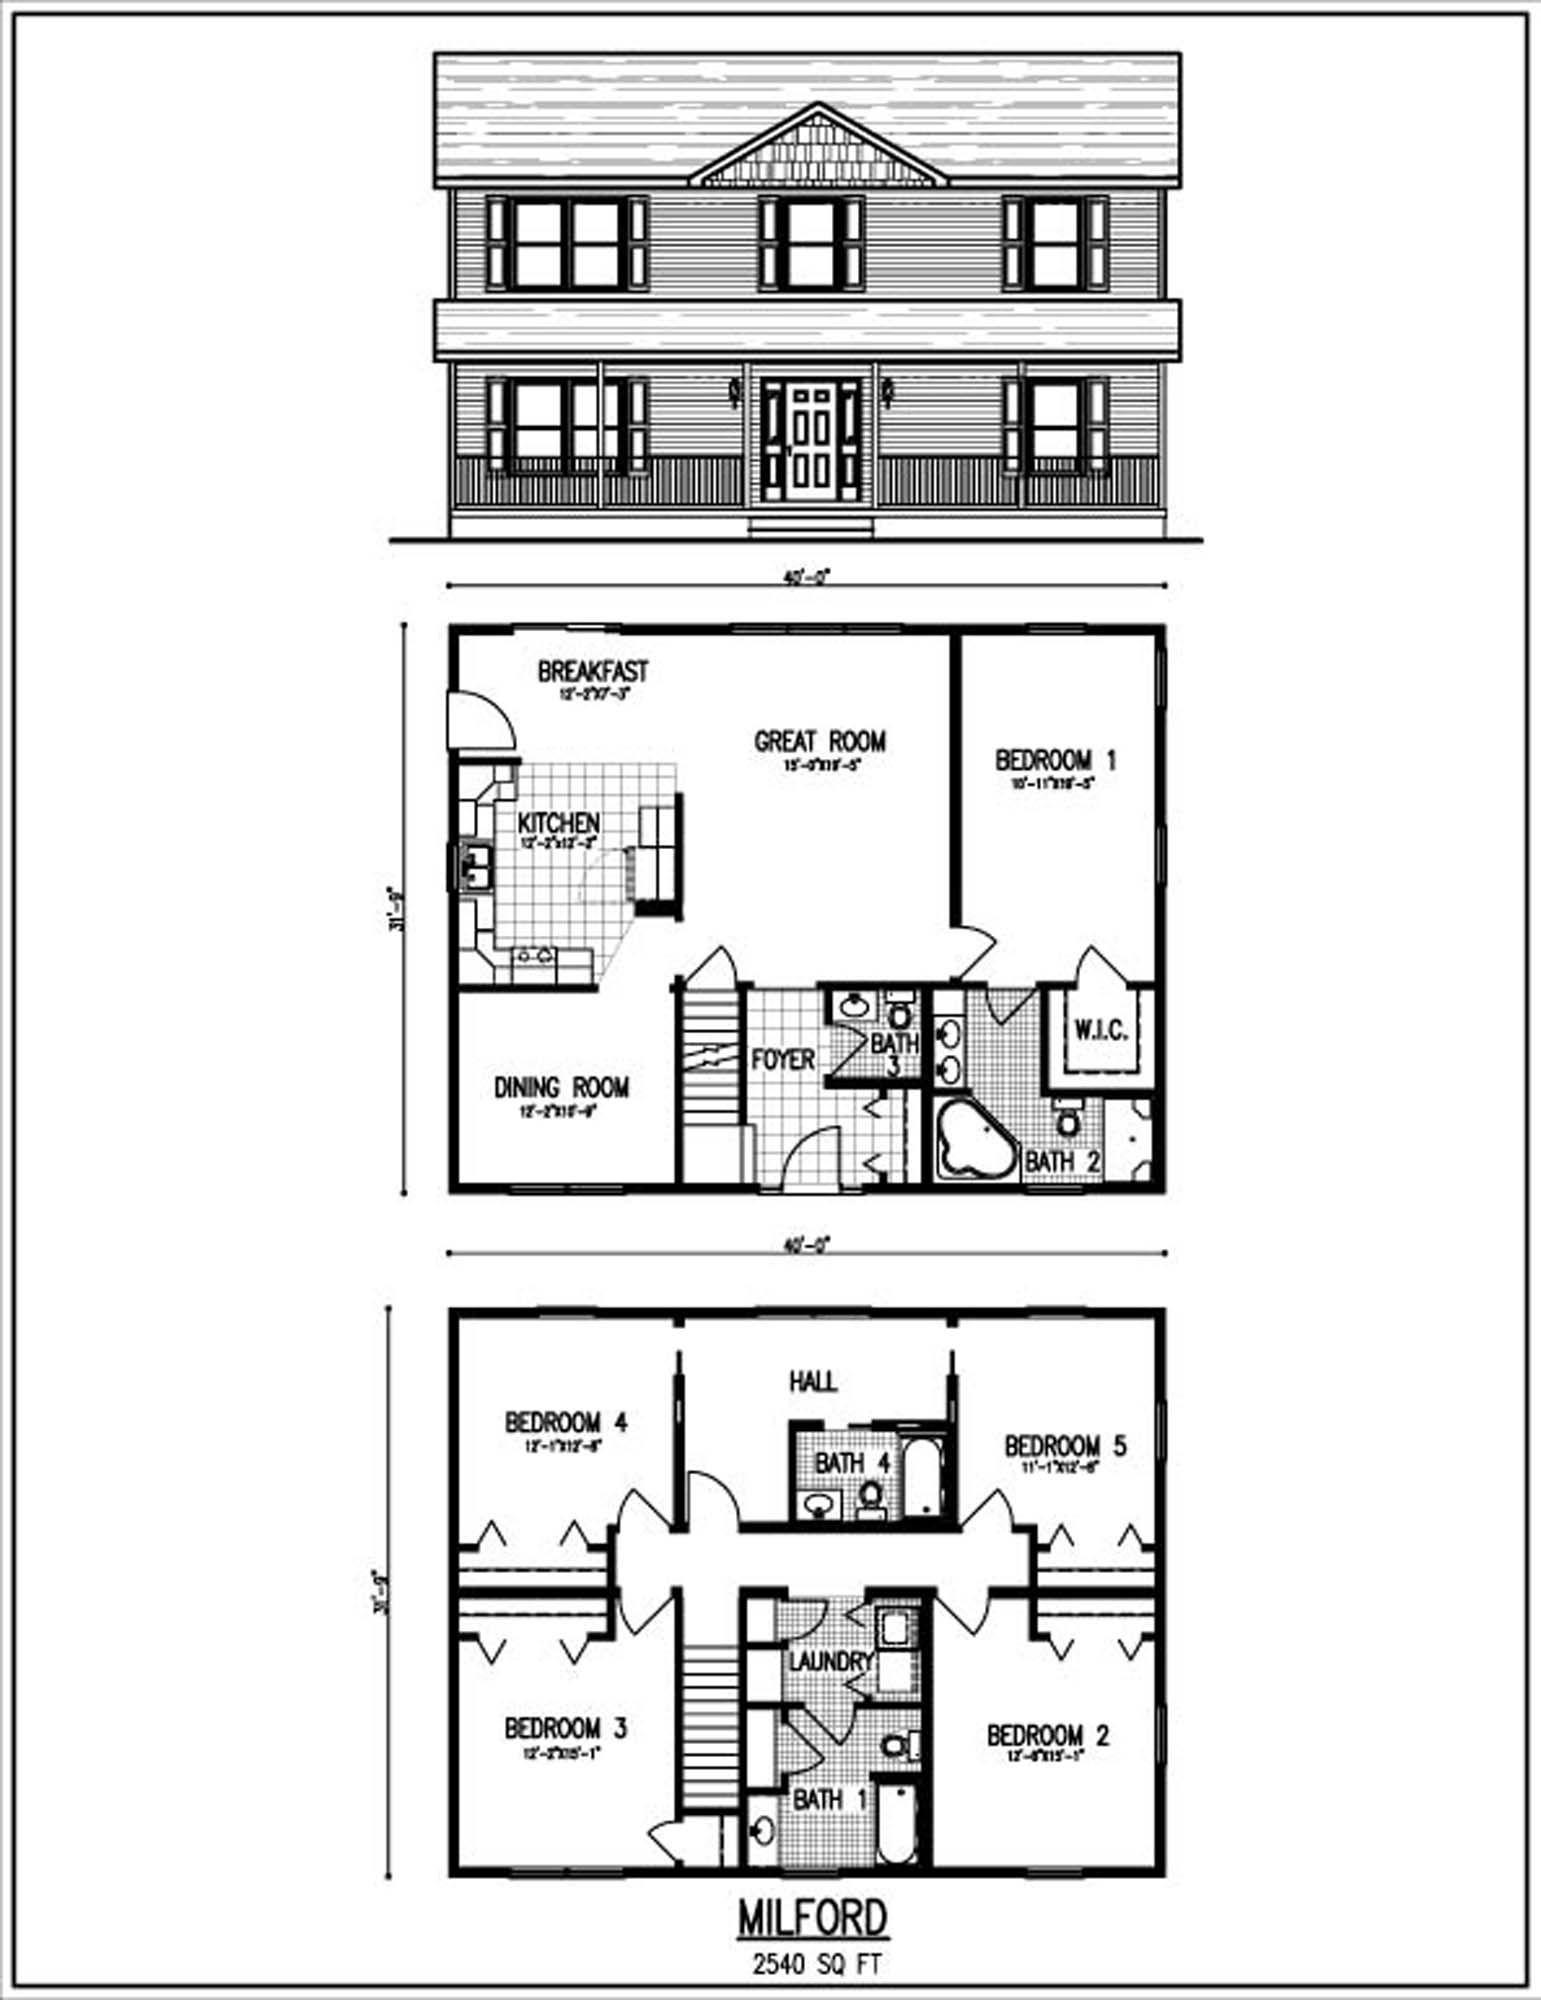 Beautiful 2 story house plans with upper level floor plan 2 storey house plans